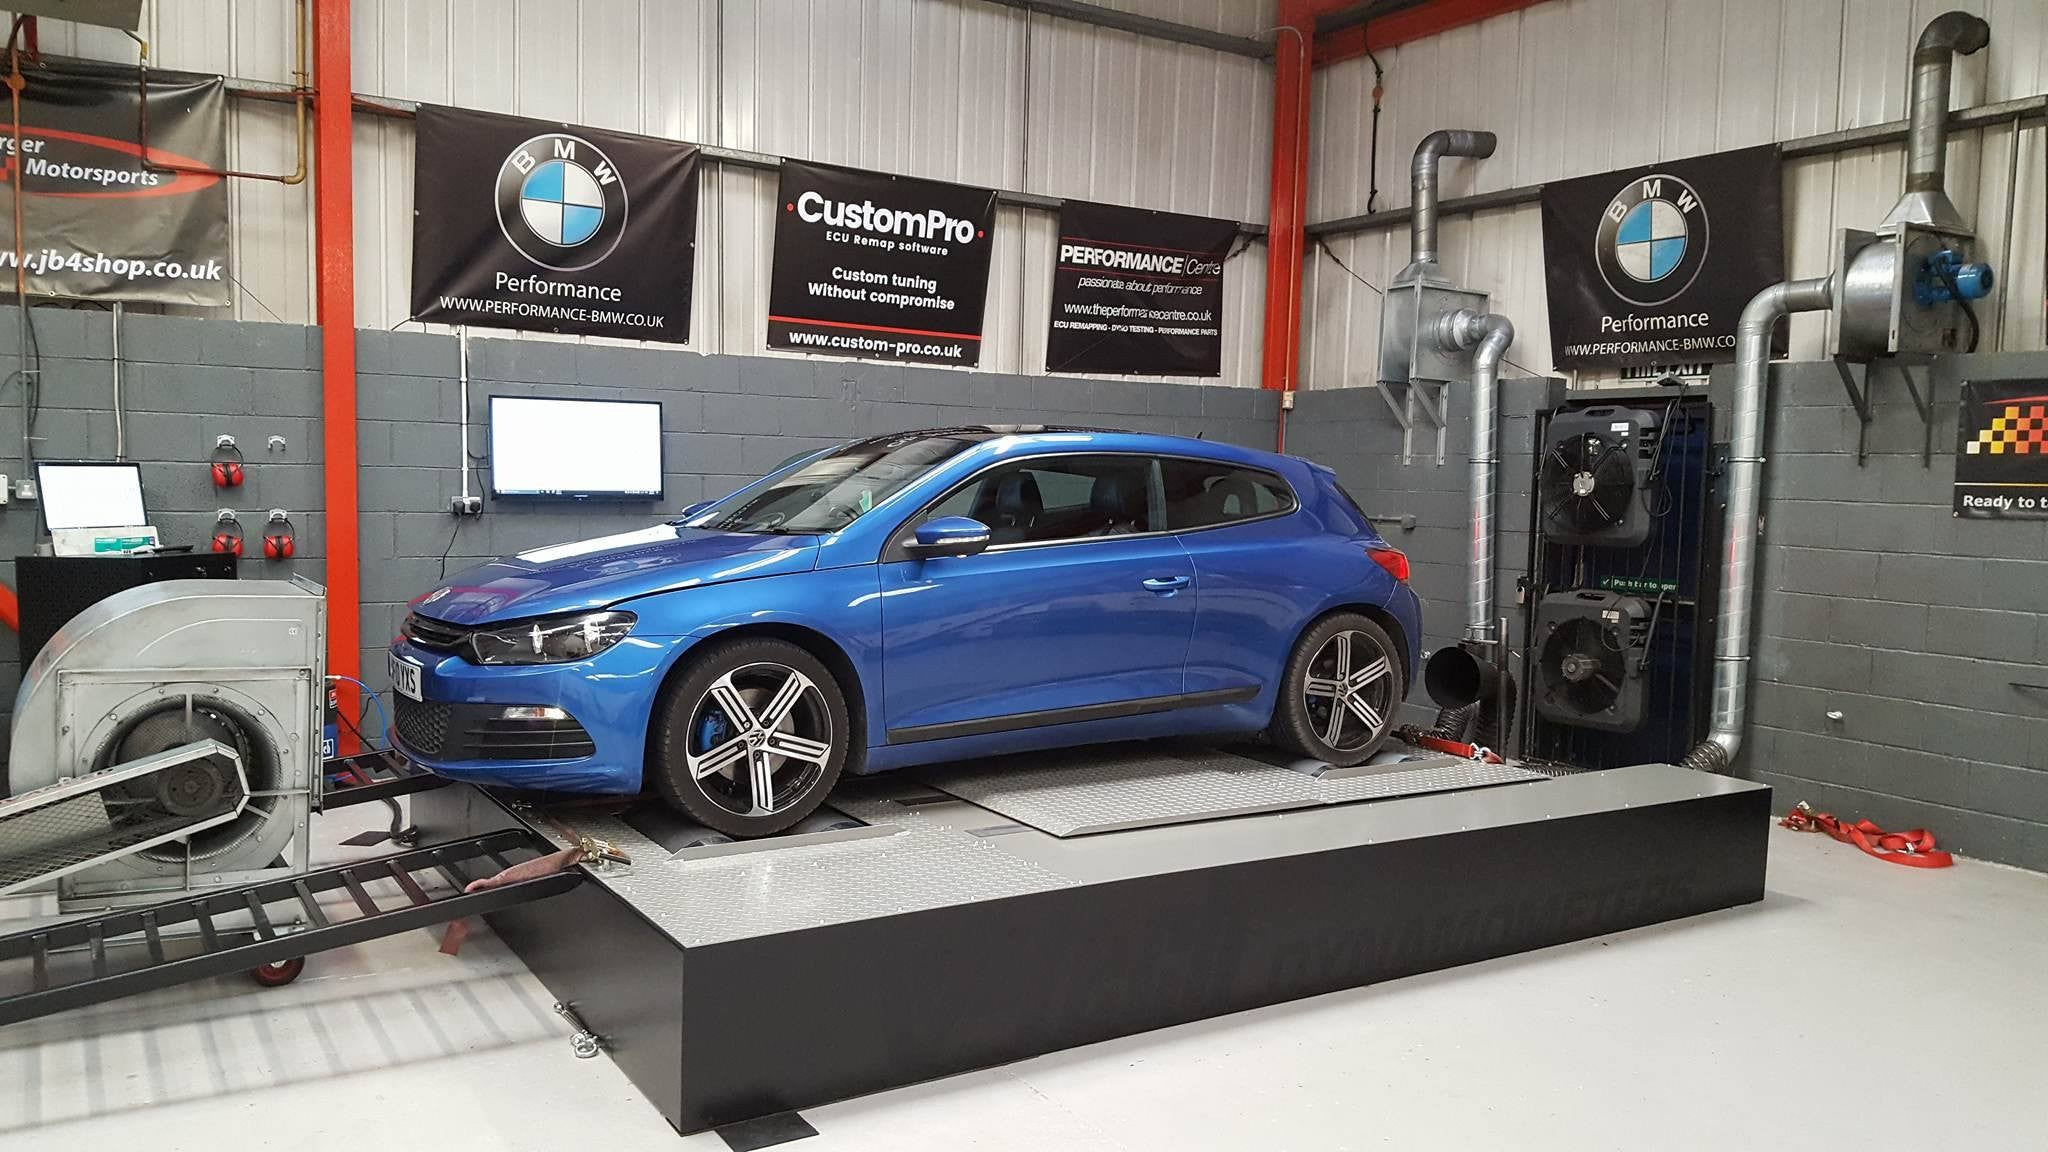 Volkswagen Scirocco 1.4 Twincharged - CustomPro remap